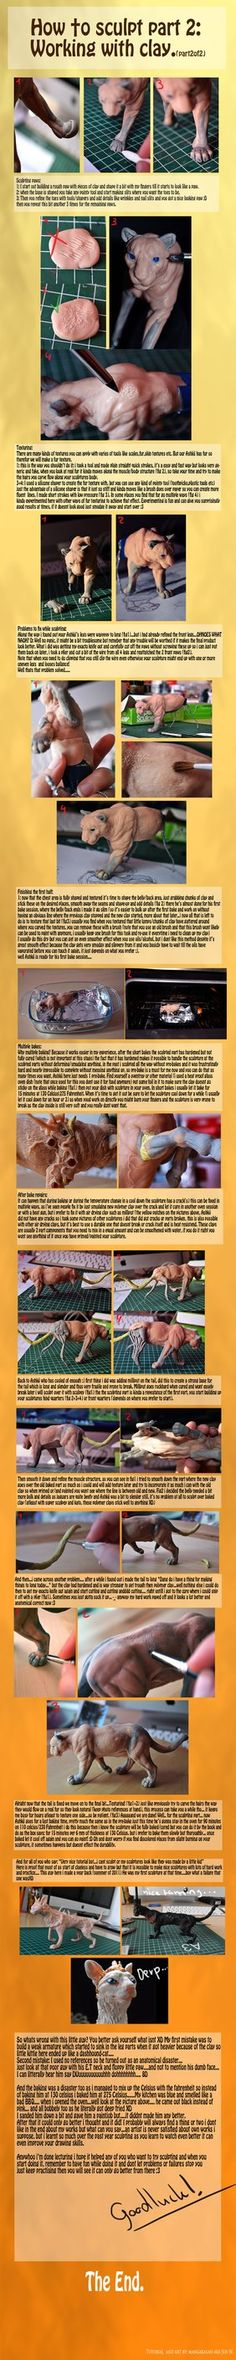 Sculpting tutorial part 2 of 2 by *mangakasan on deviantART